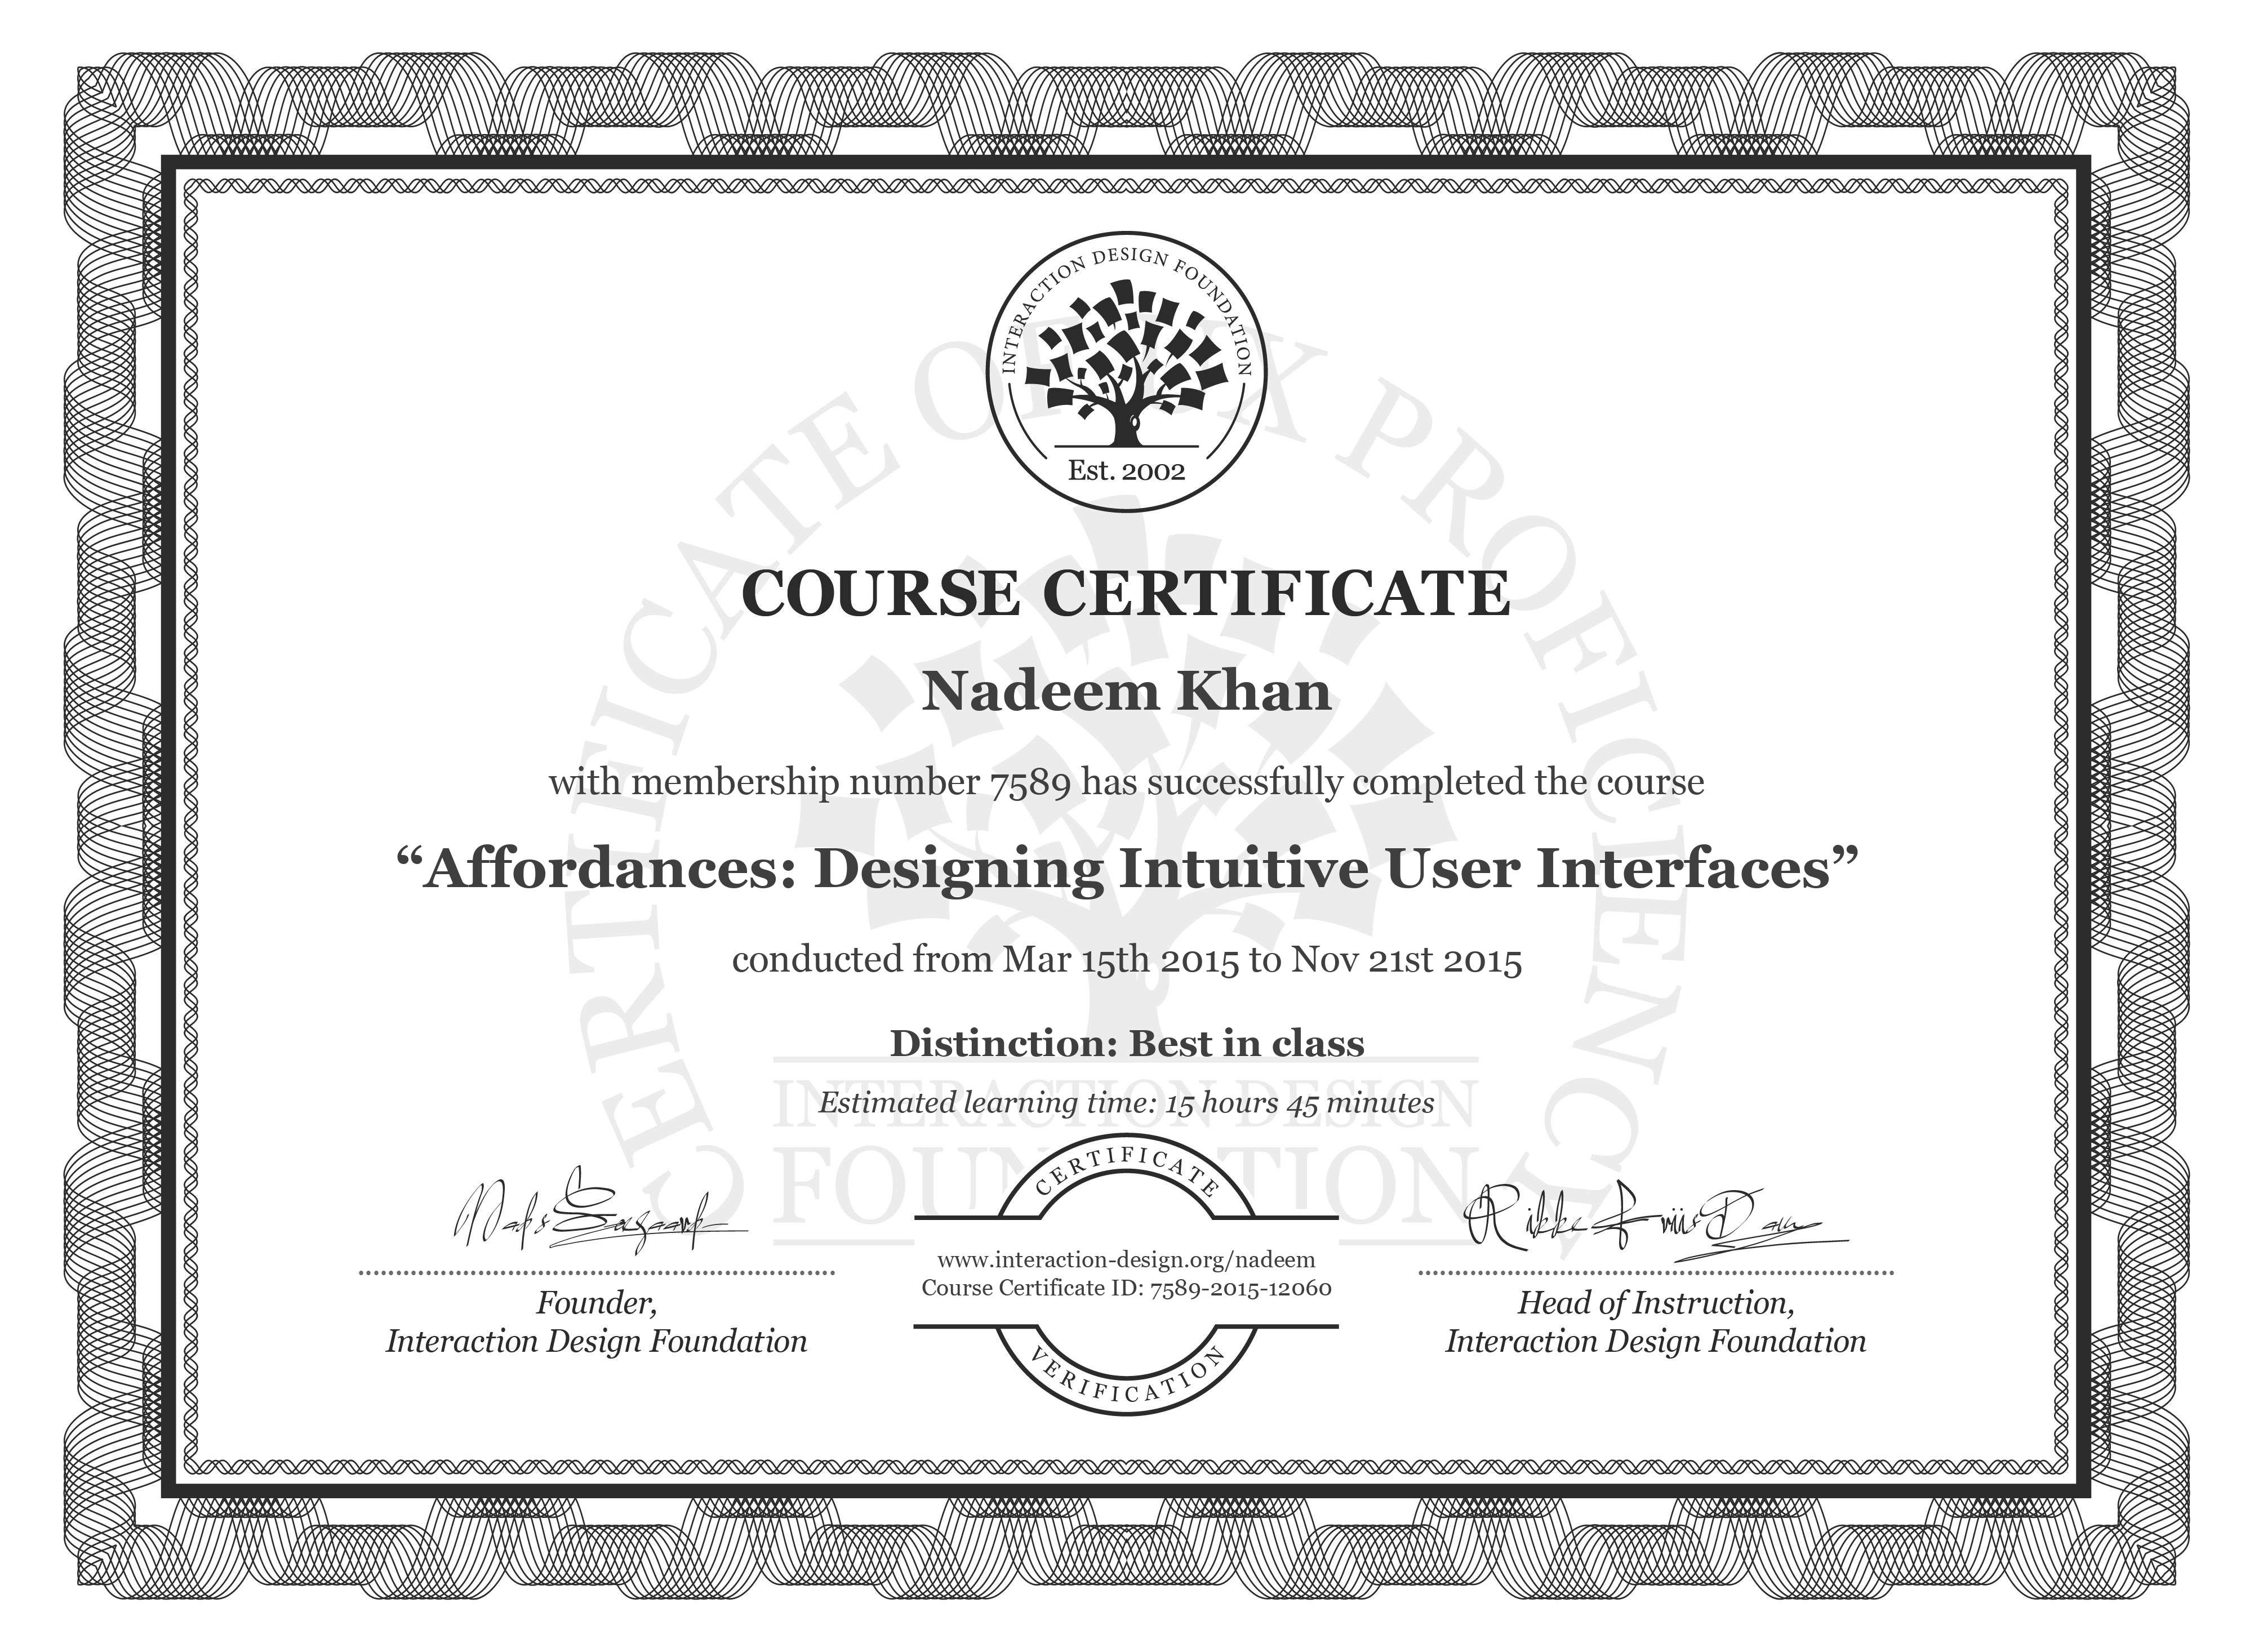 Nadeem Khan's Course Certificate: Affordances: Designing Intuitive User Interfaces